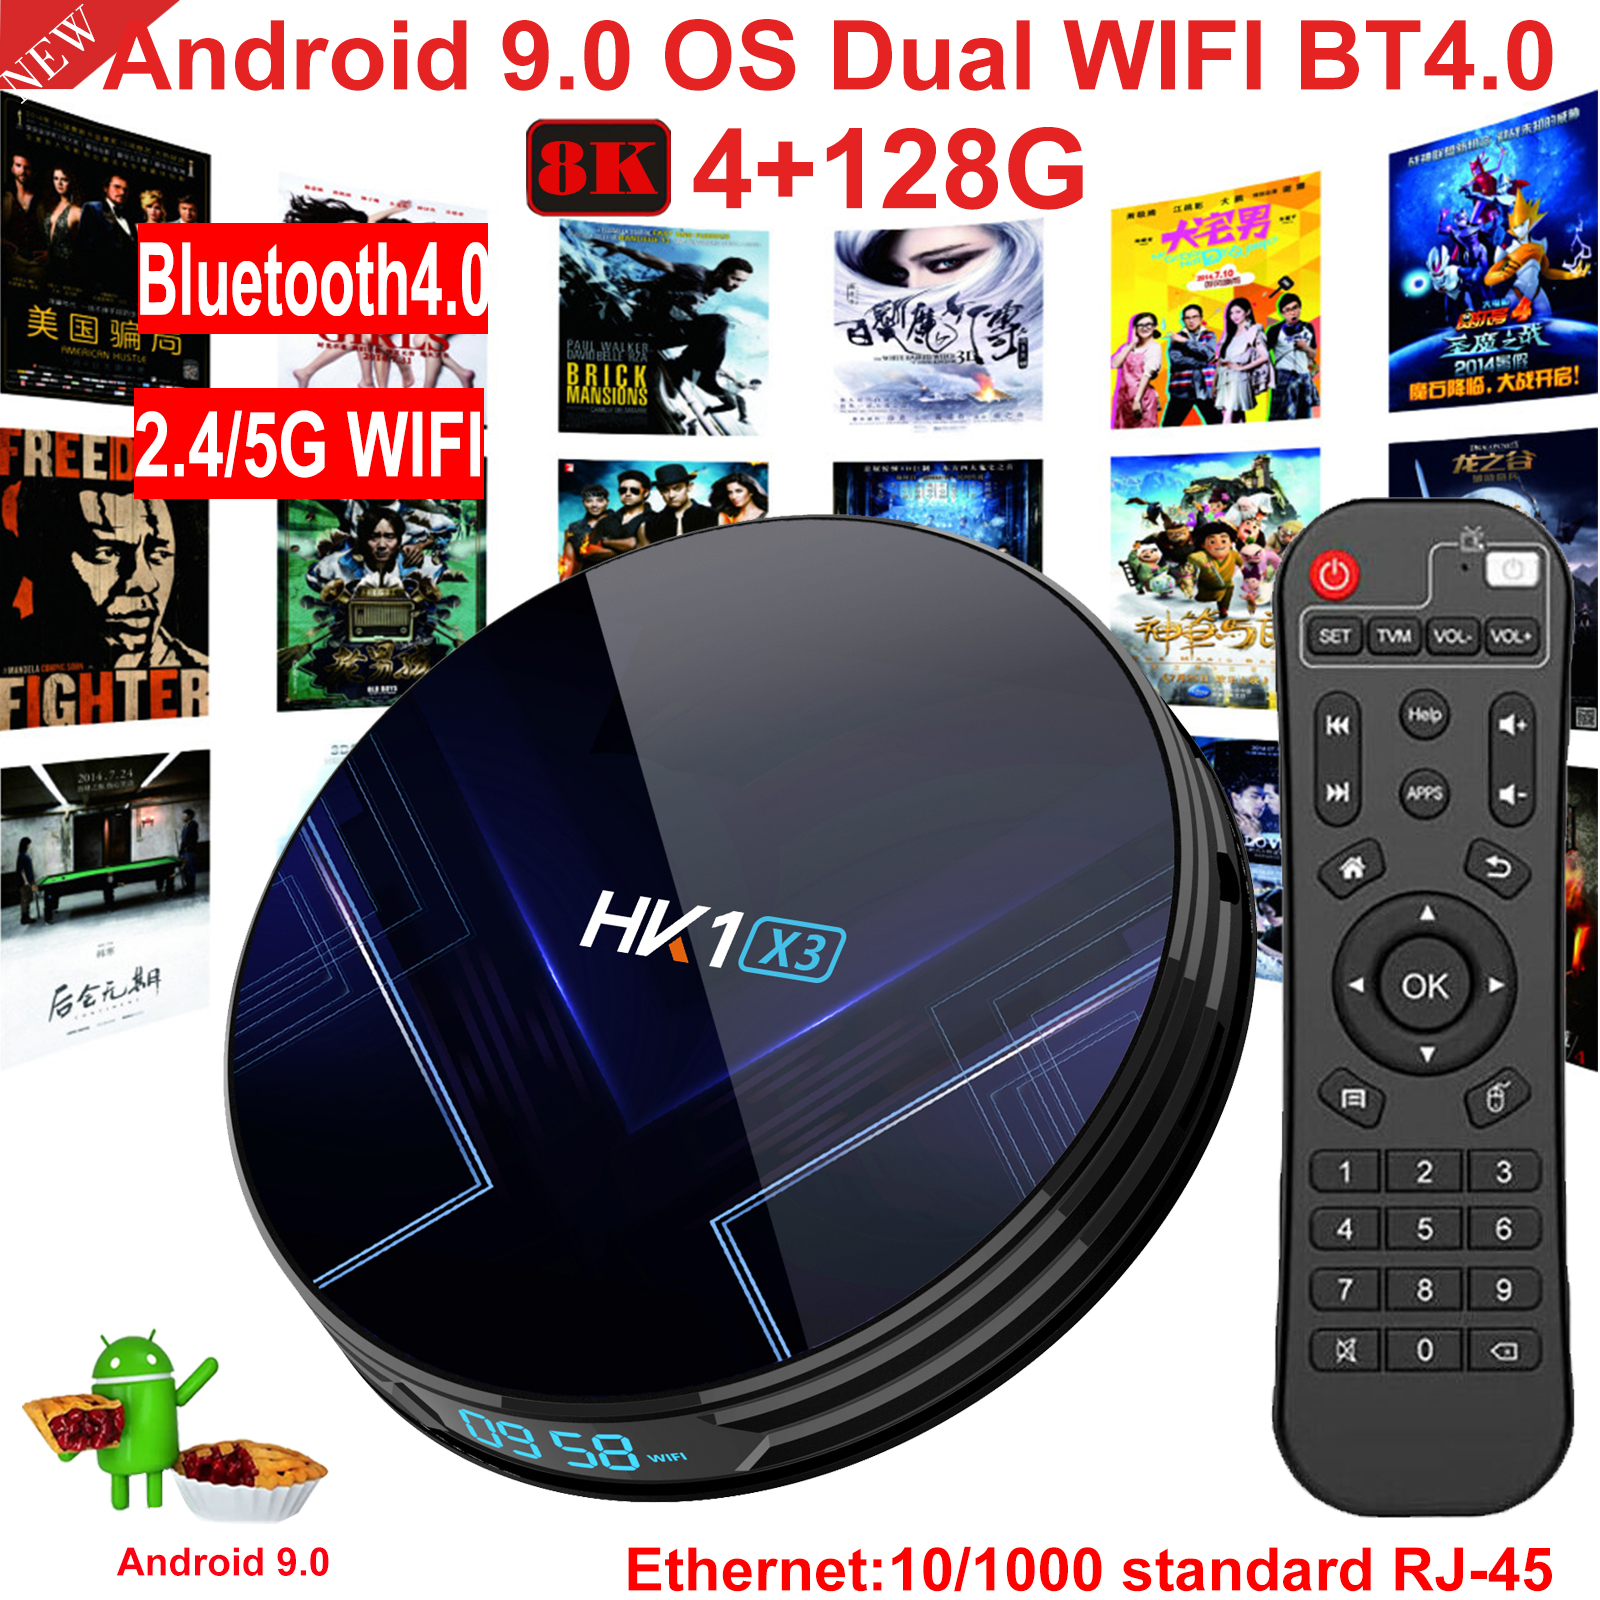 HK1 X3 8K 4+128G Android 9.0 5G WIFI BT Smart TV BOX Amlogic HDMI Media Player